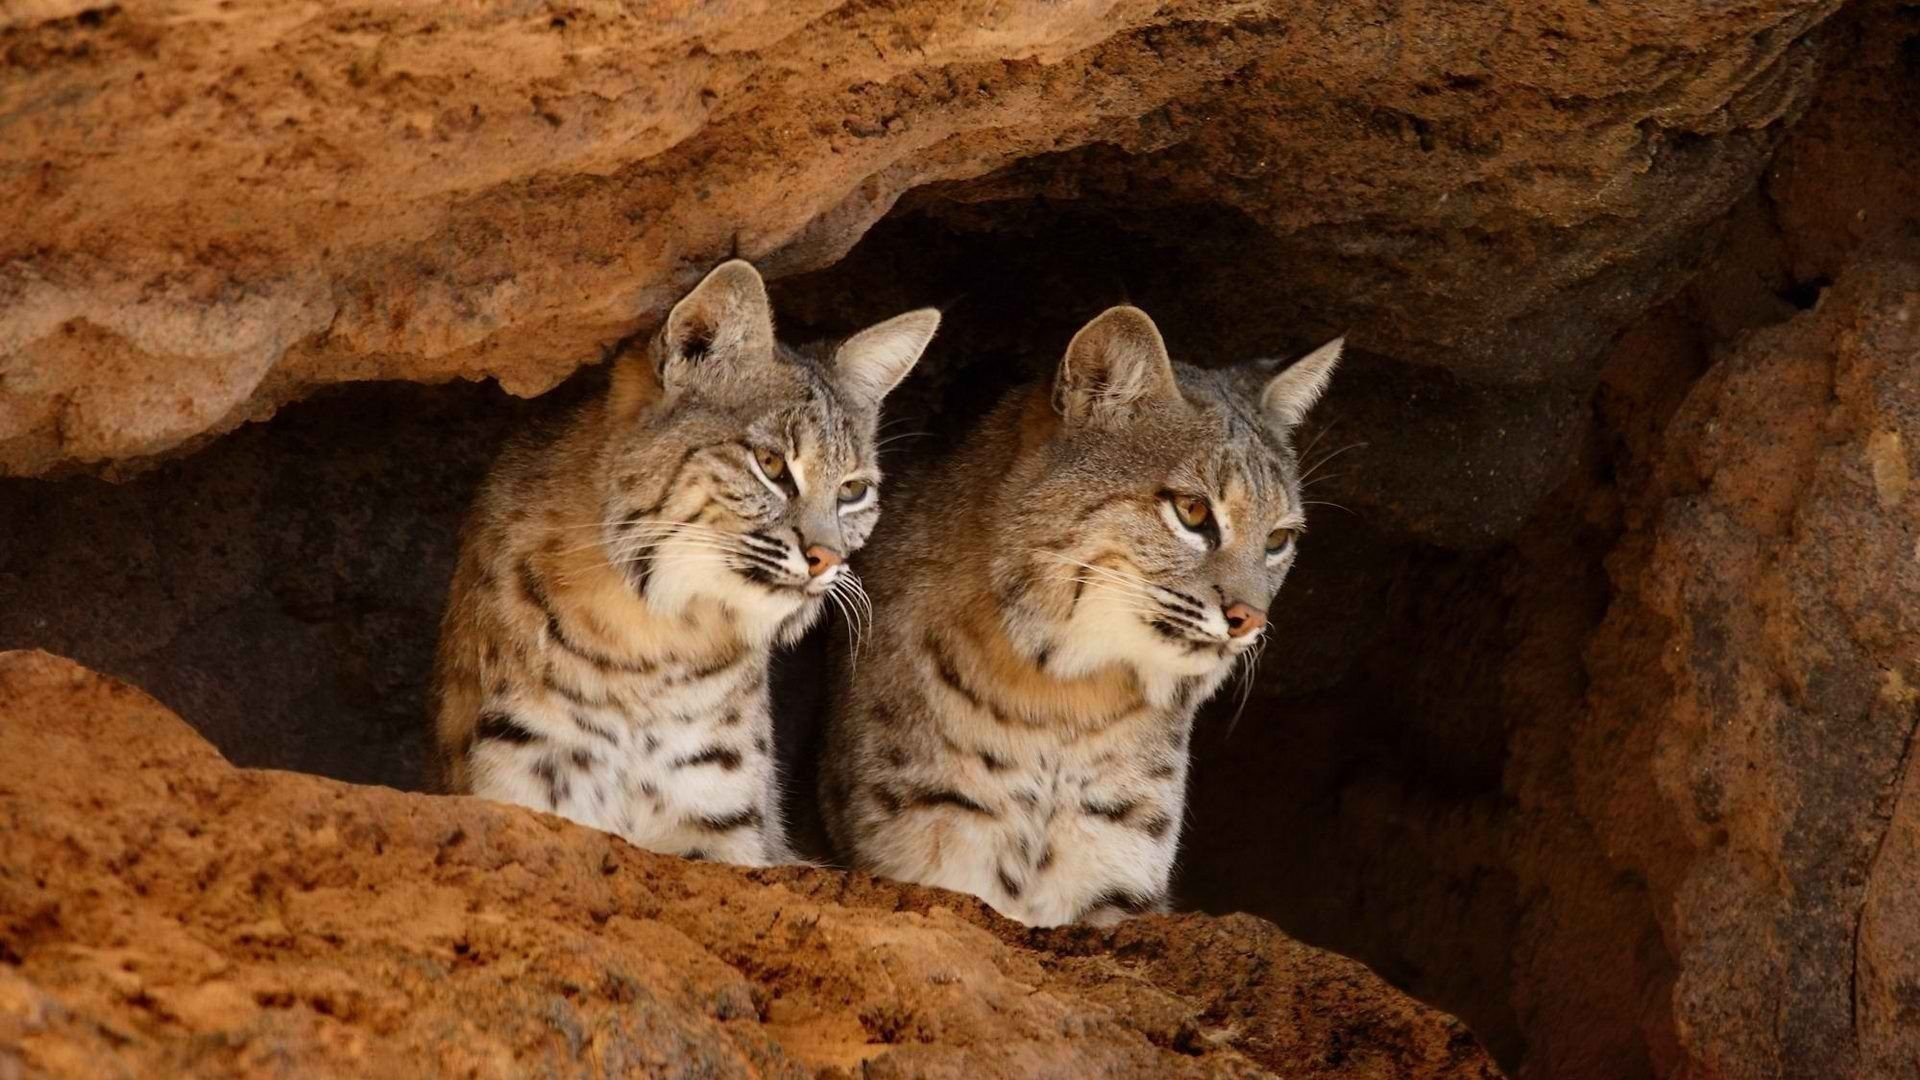 Where To Download Iphone X Live Wallpapers Bobcat Hd Wallpaper Background Image 1920x1080 Id